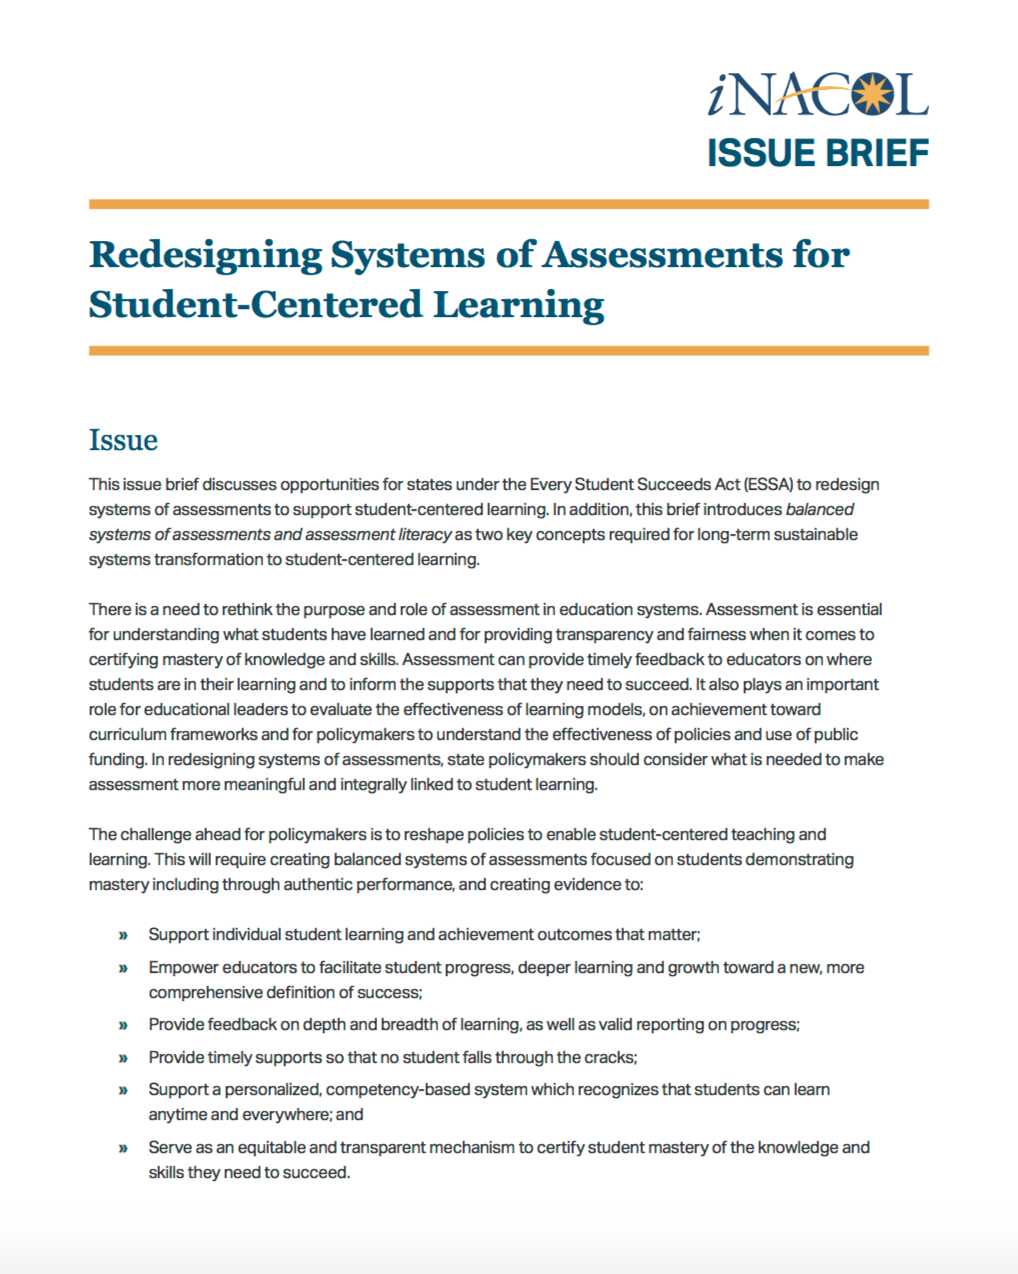 Redesigning Systems of Assessments